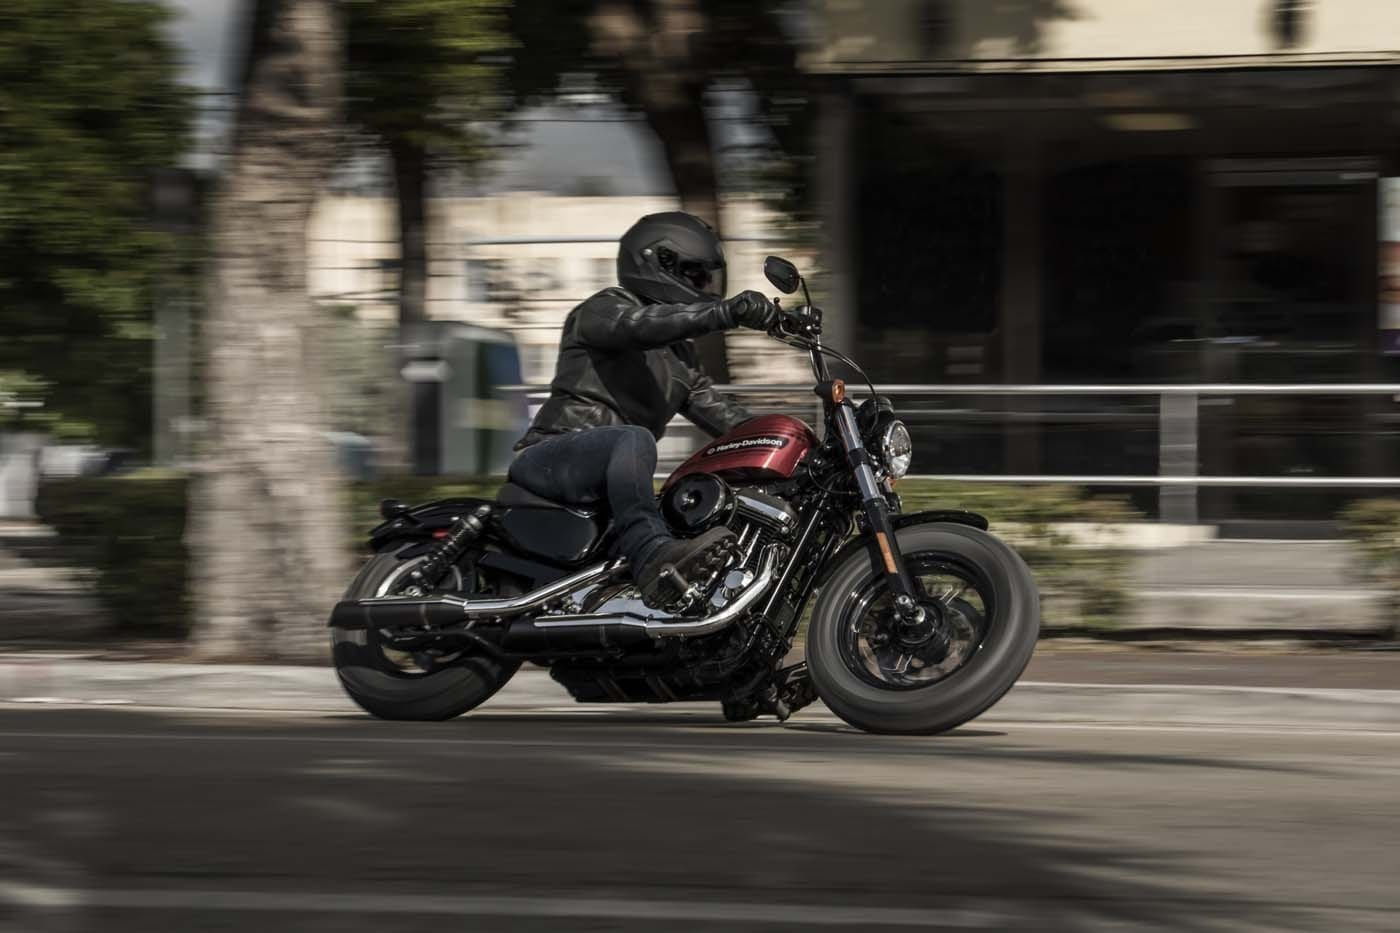 HARLEY-DAVIDSON FORTY-EIGHT SPECIAL AND IRON 1200 SPORTSTERS 24